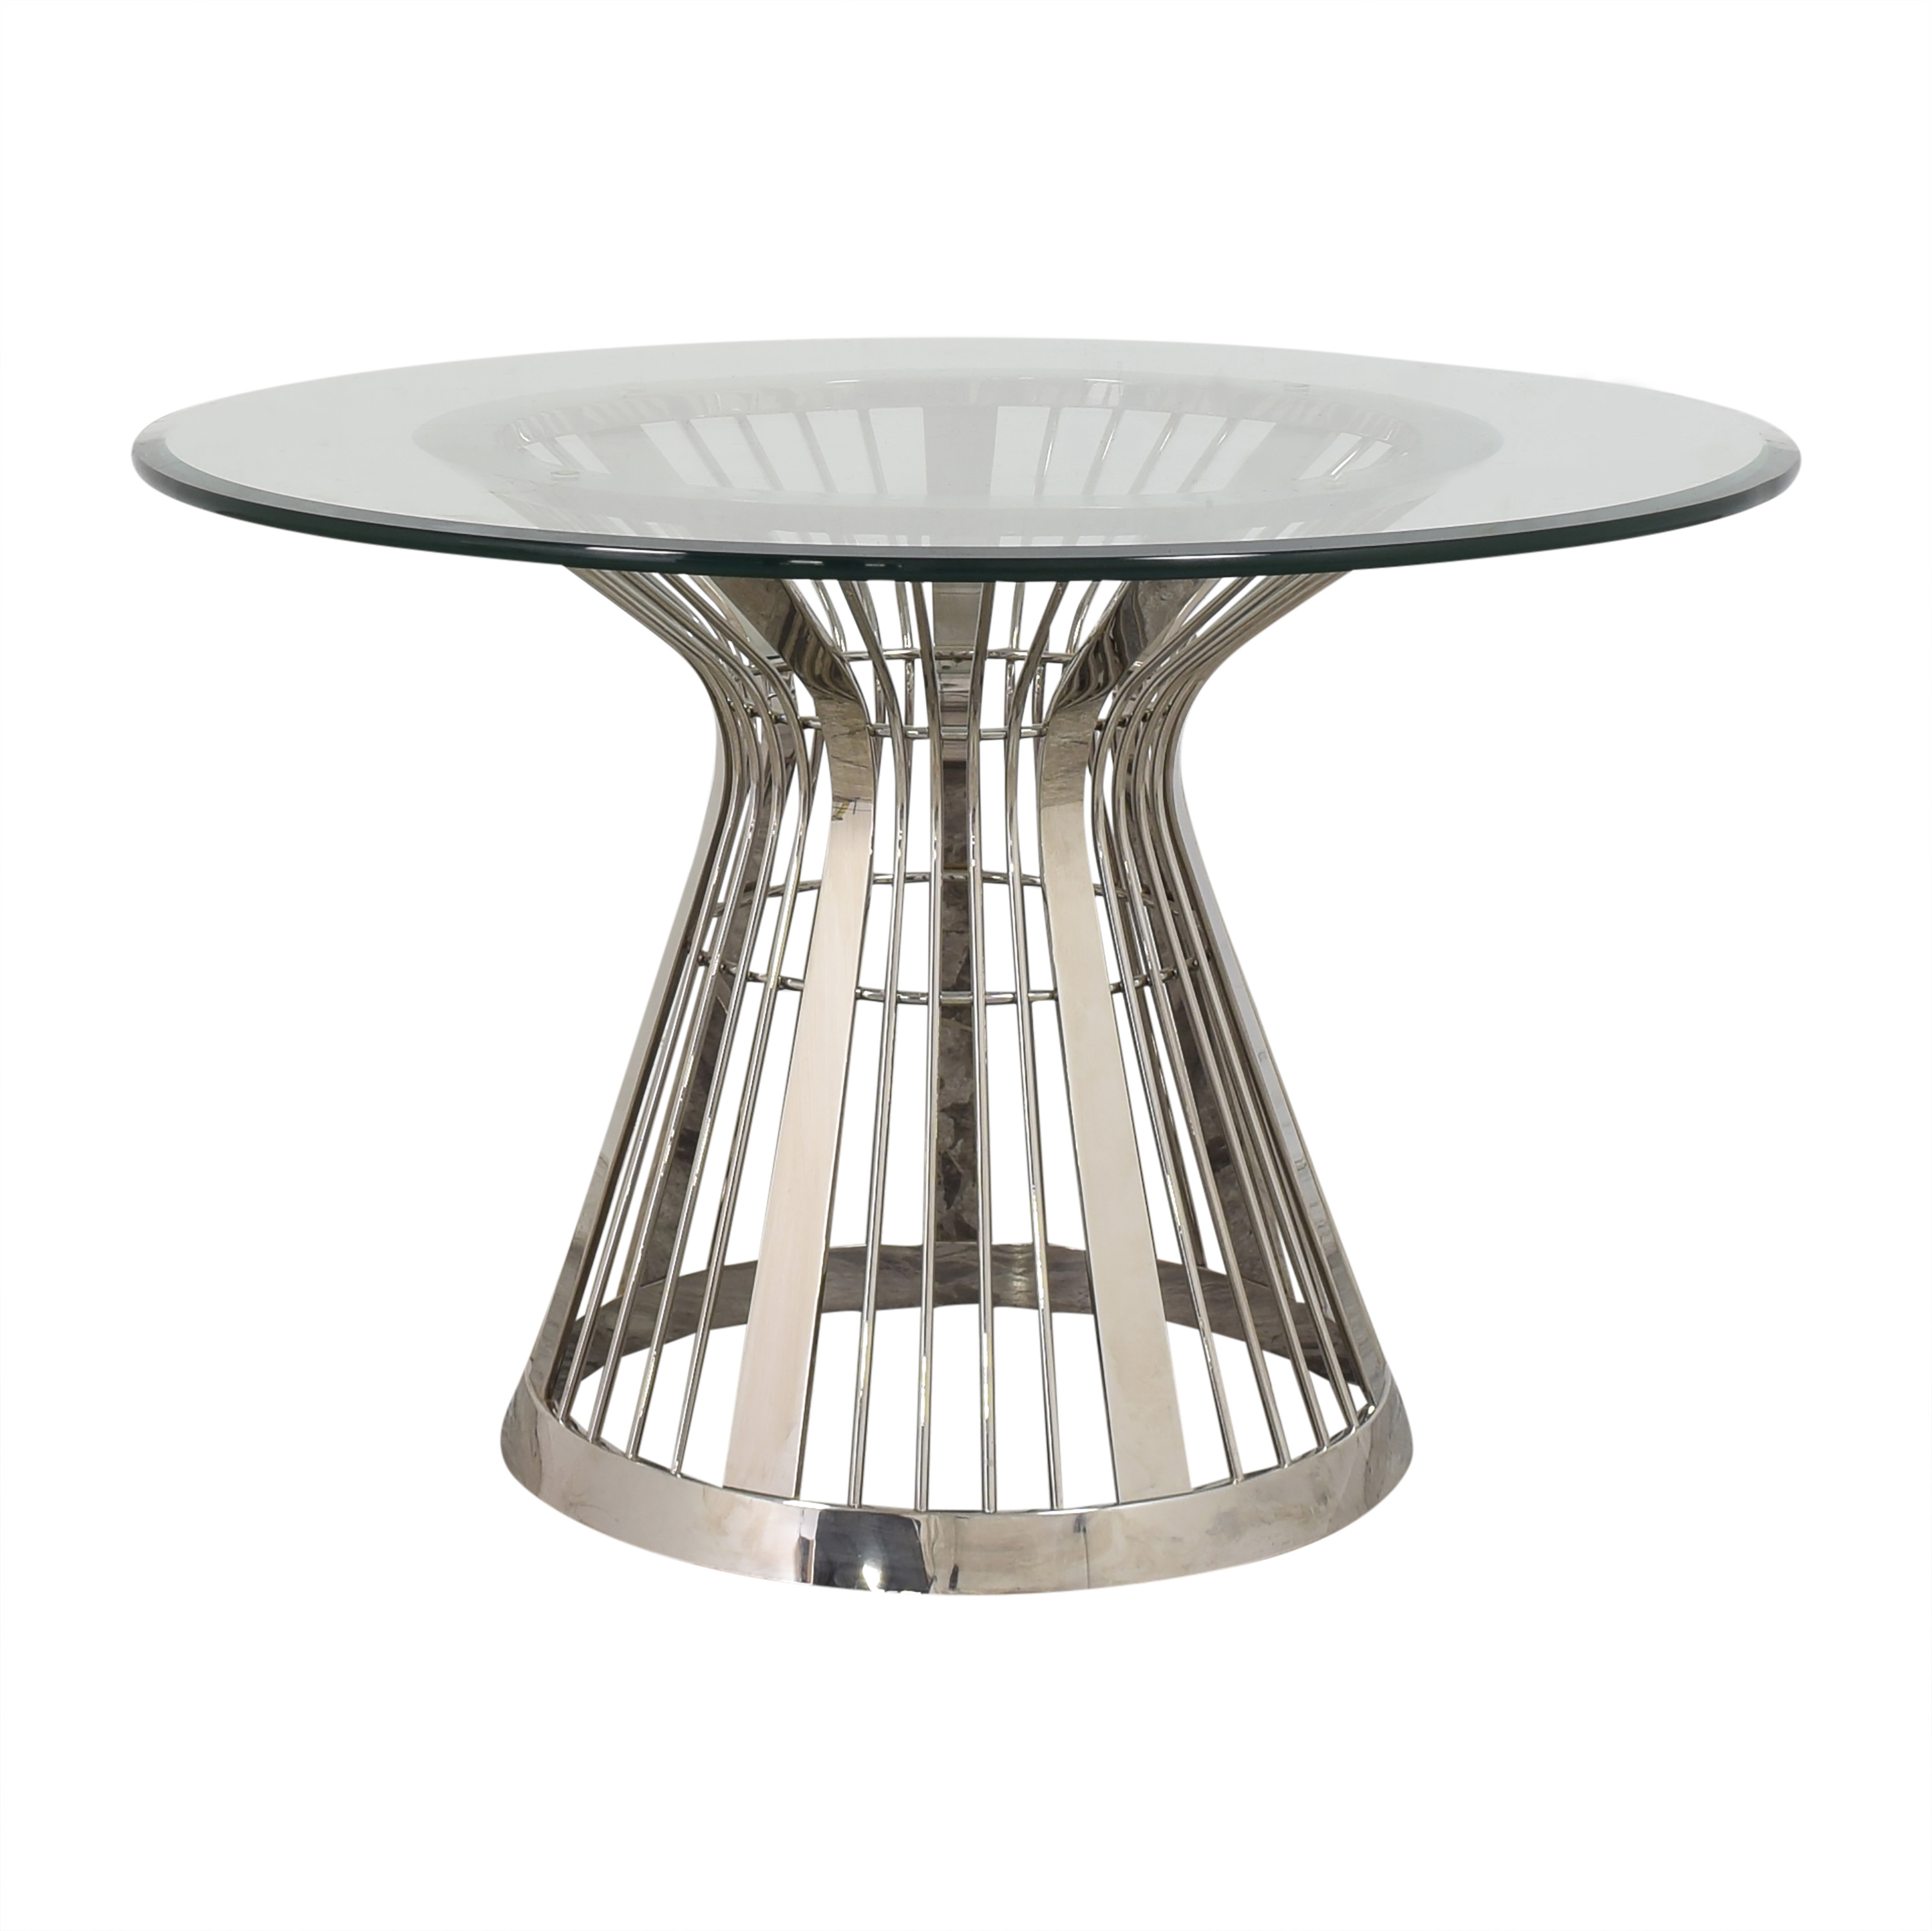 shop Lexington Furniture Lexington Ariana Riviera Round Dining Table online